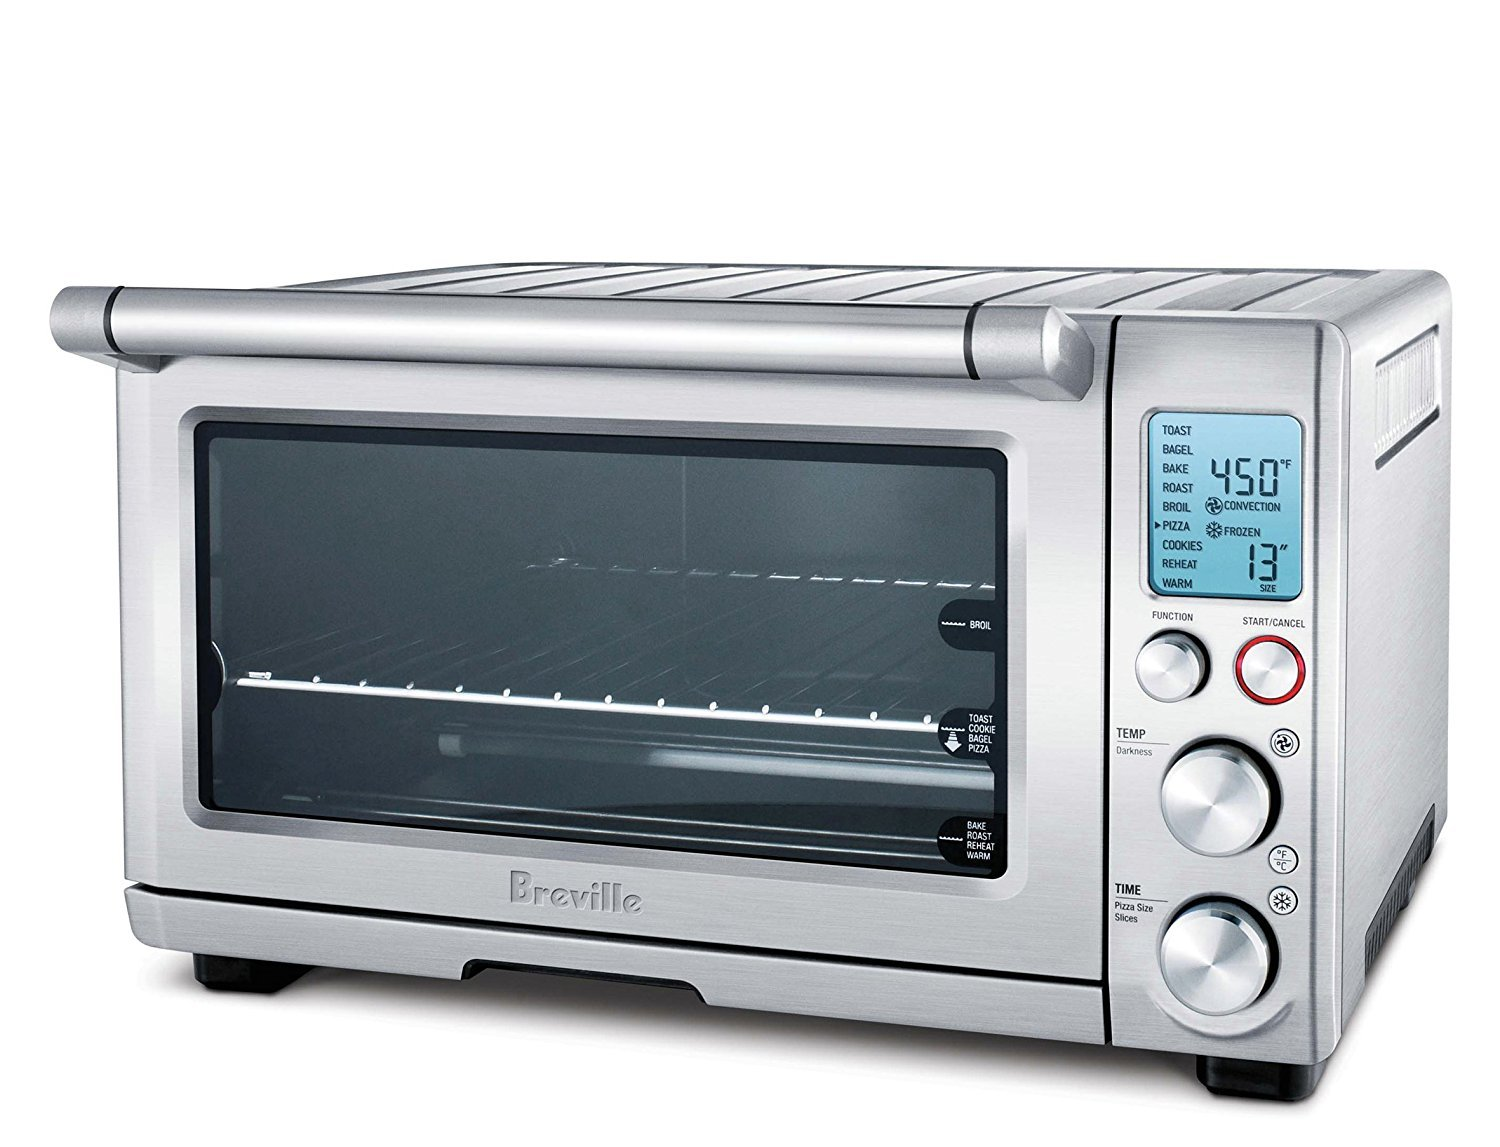 Breville the Smart Oven 1800-Watt Convection Toaster Oven - BOV800XL by Breville (Image #2)